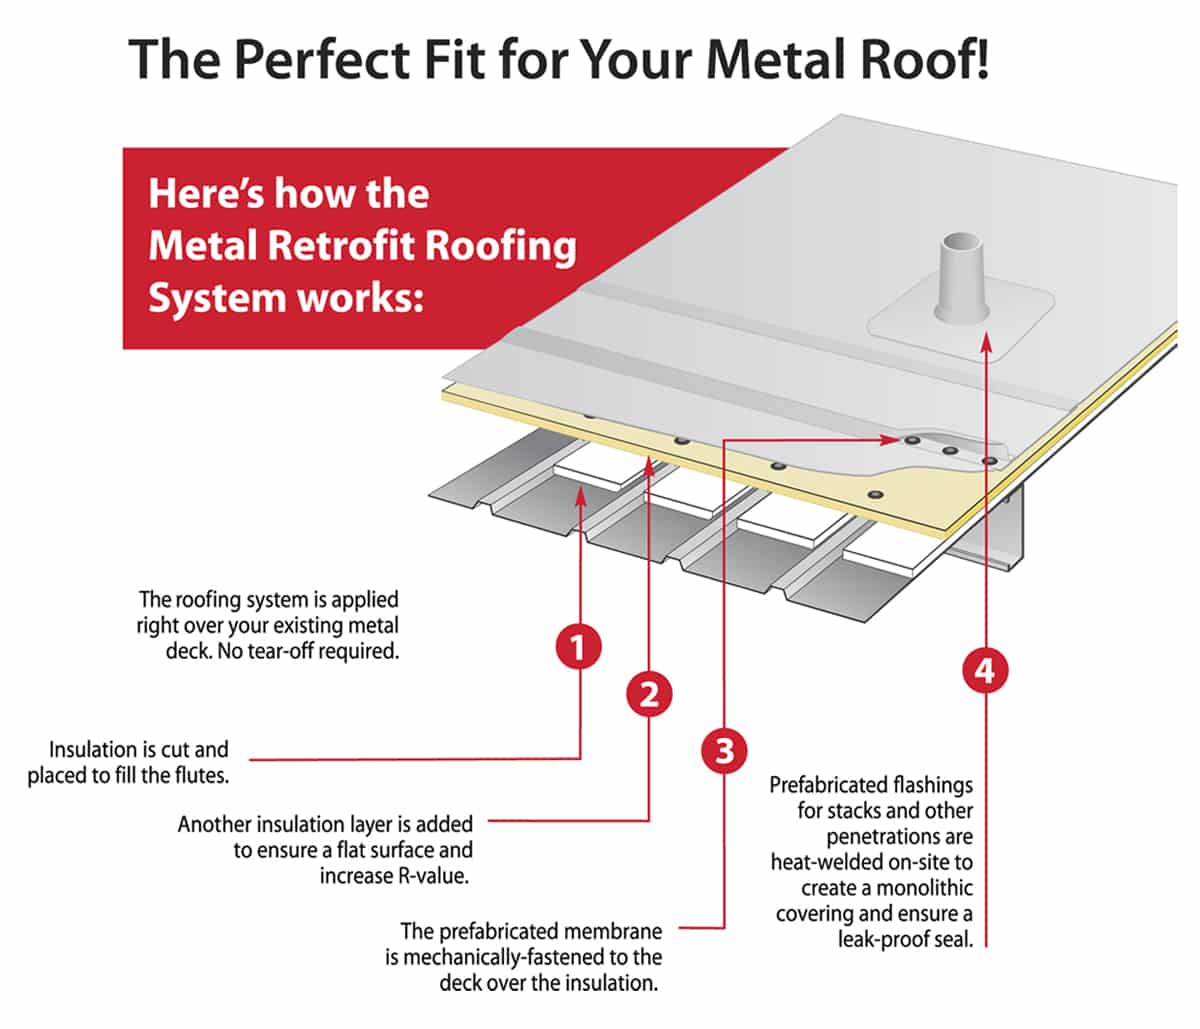 Metal Roofing | Retrofit Roofing System | Sentry Roofing Inc.